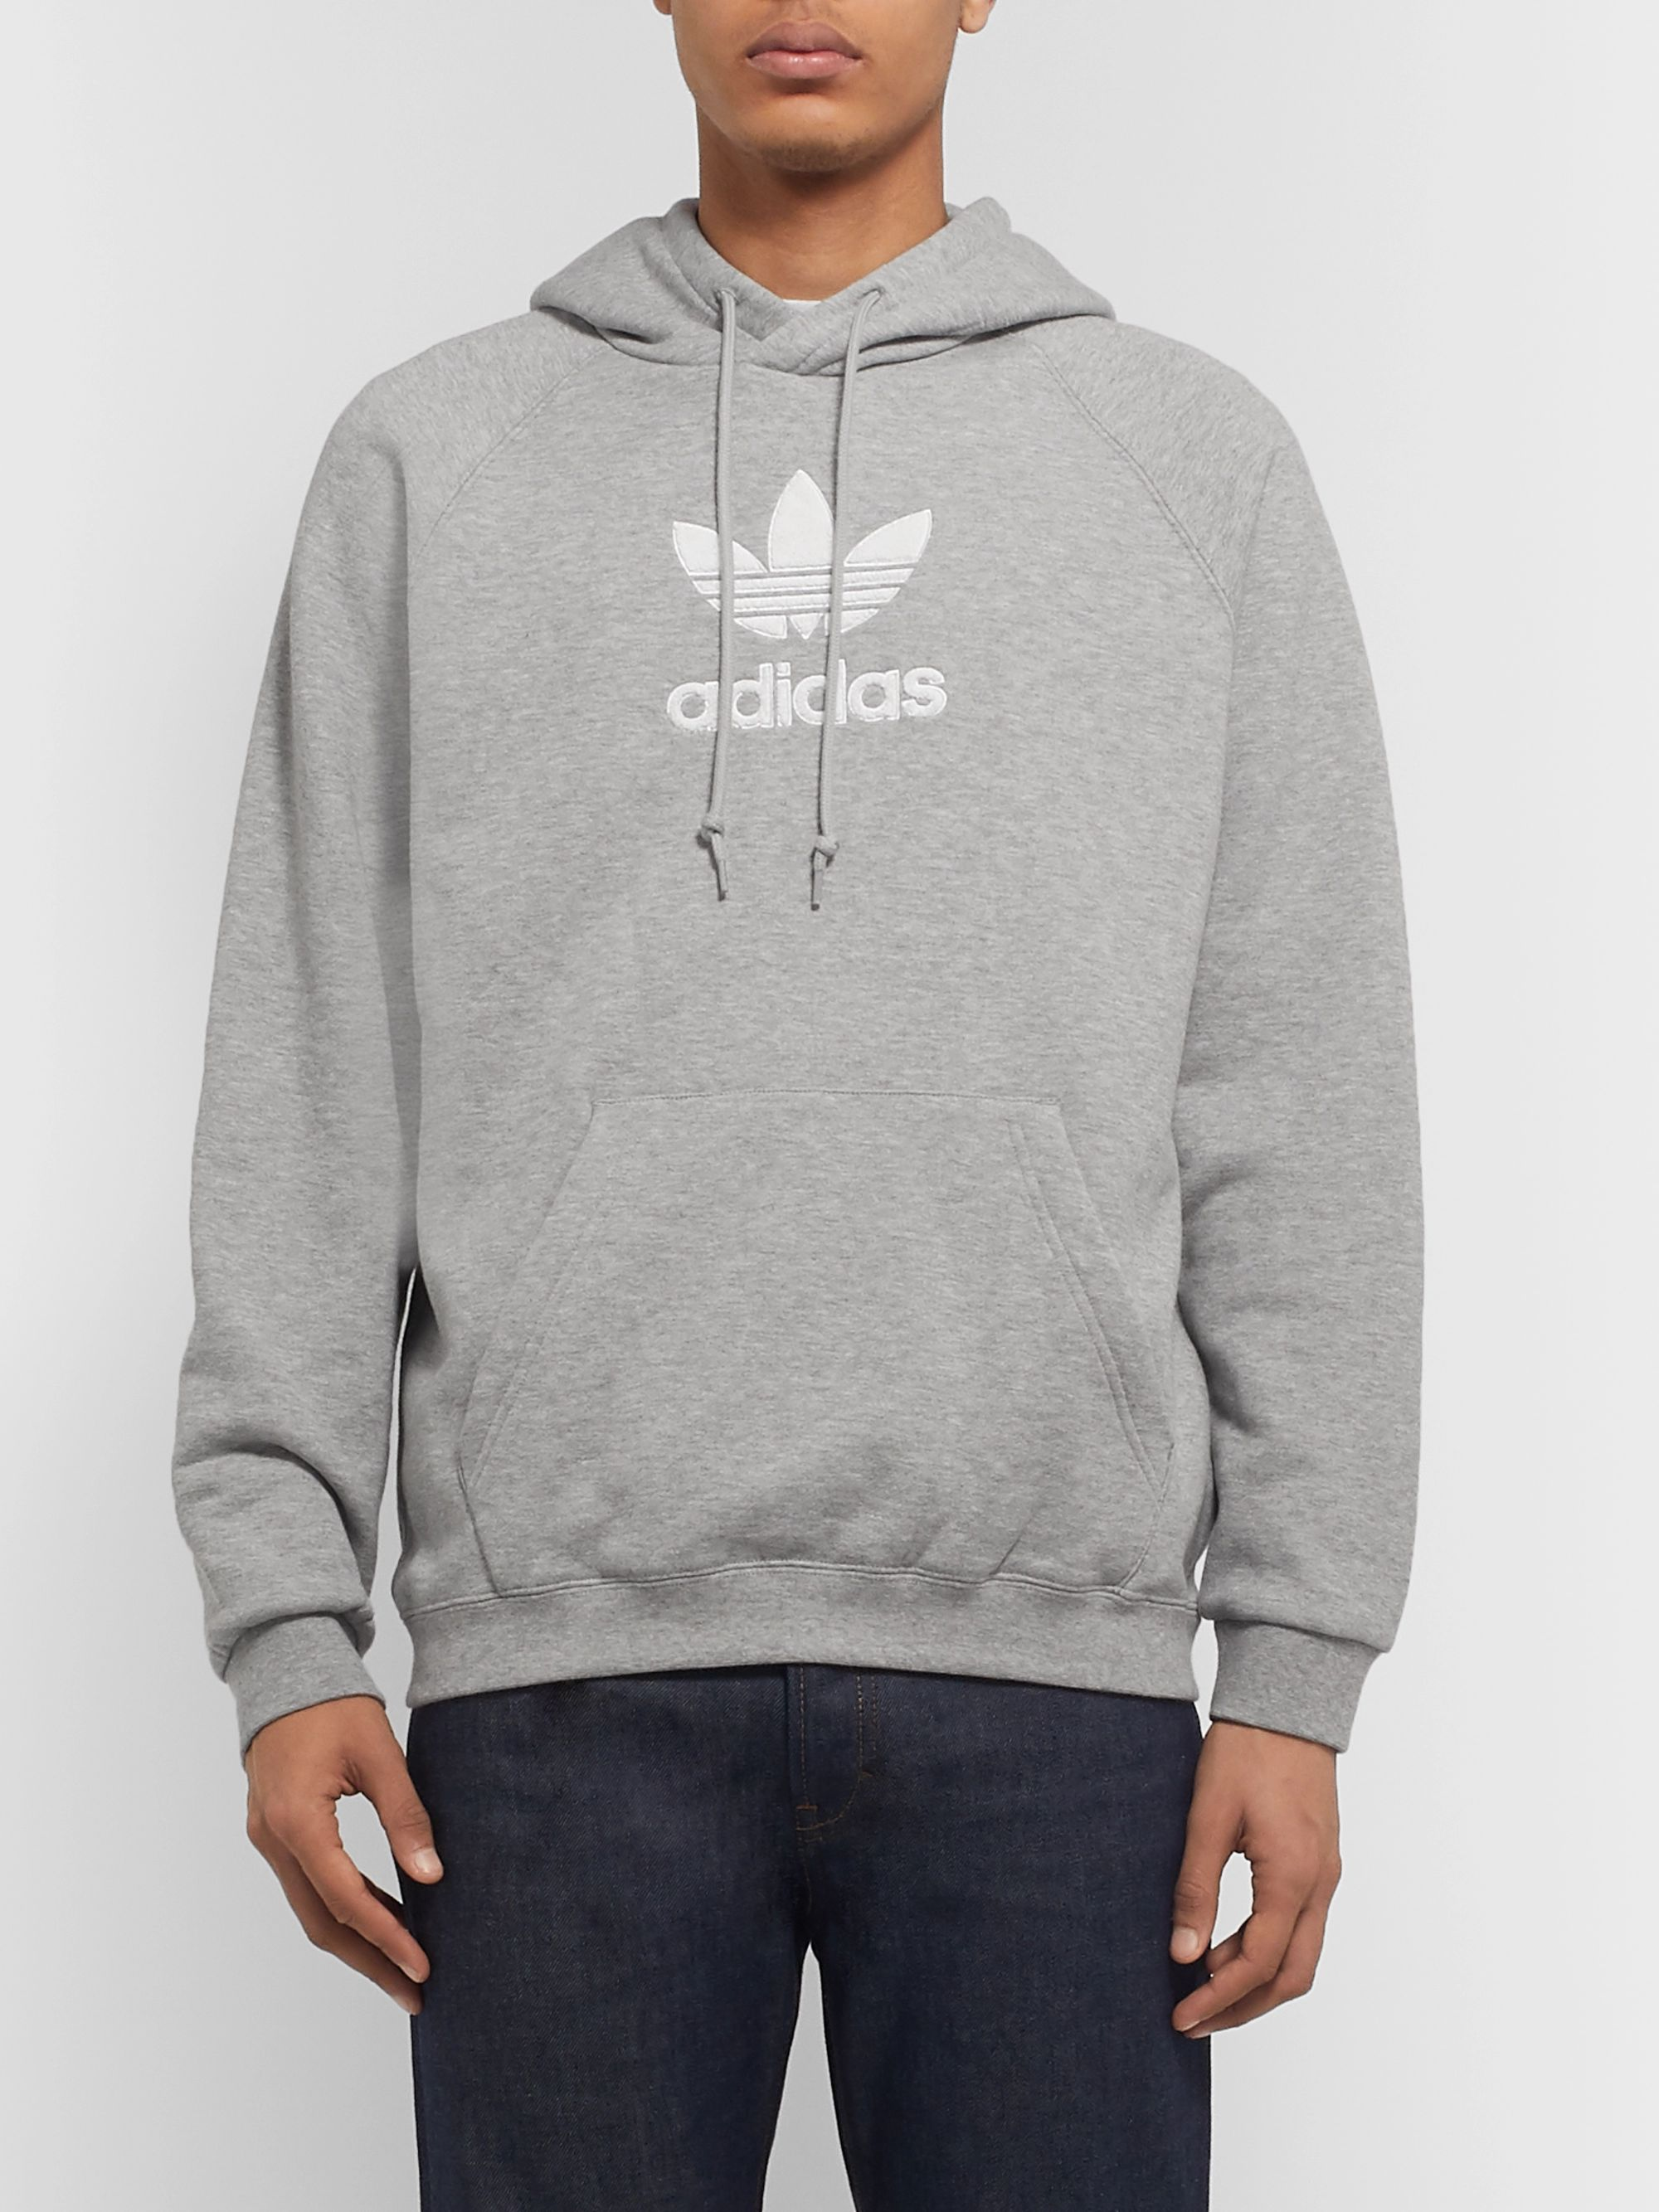 adidas Originals Logo-Appliquéd Loopback Cotton-Jersey Hoodie